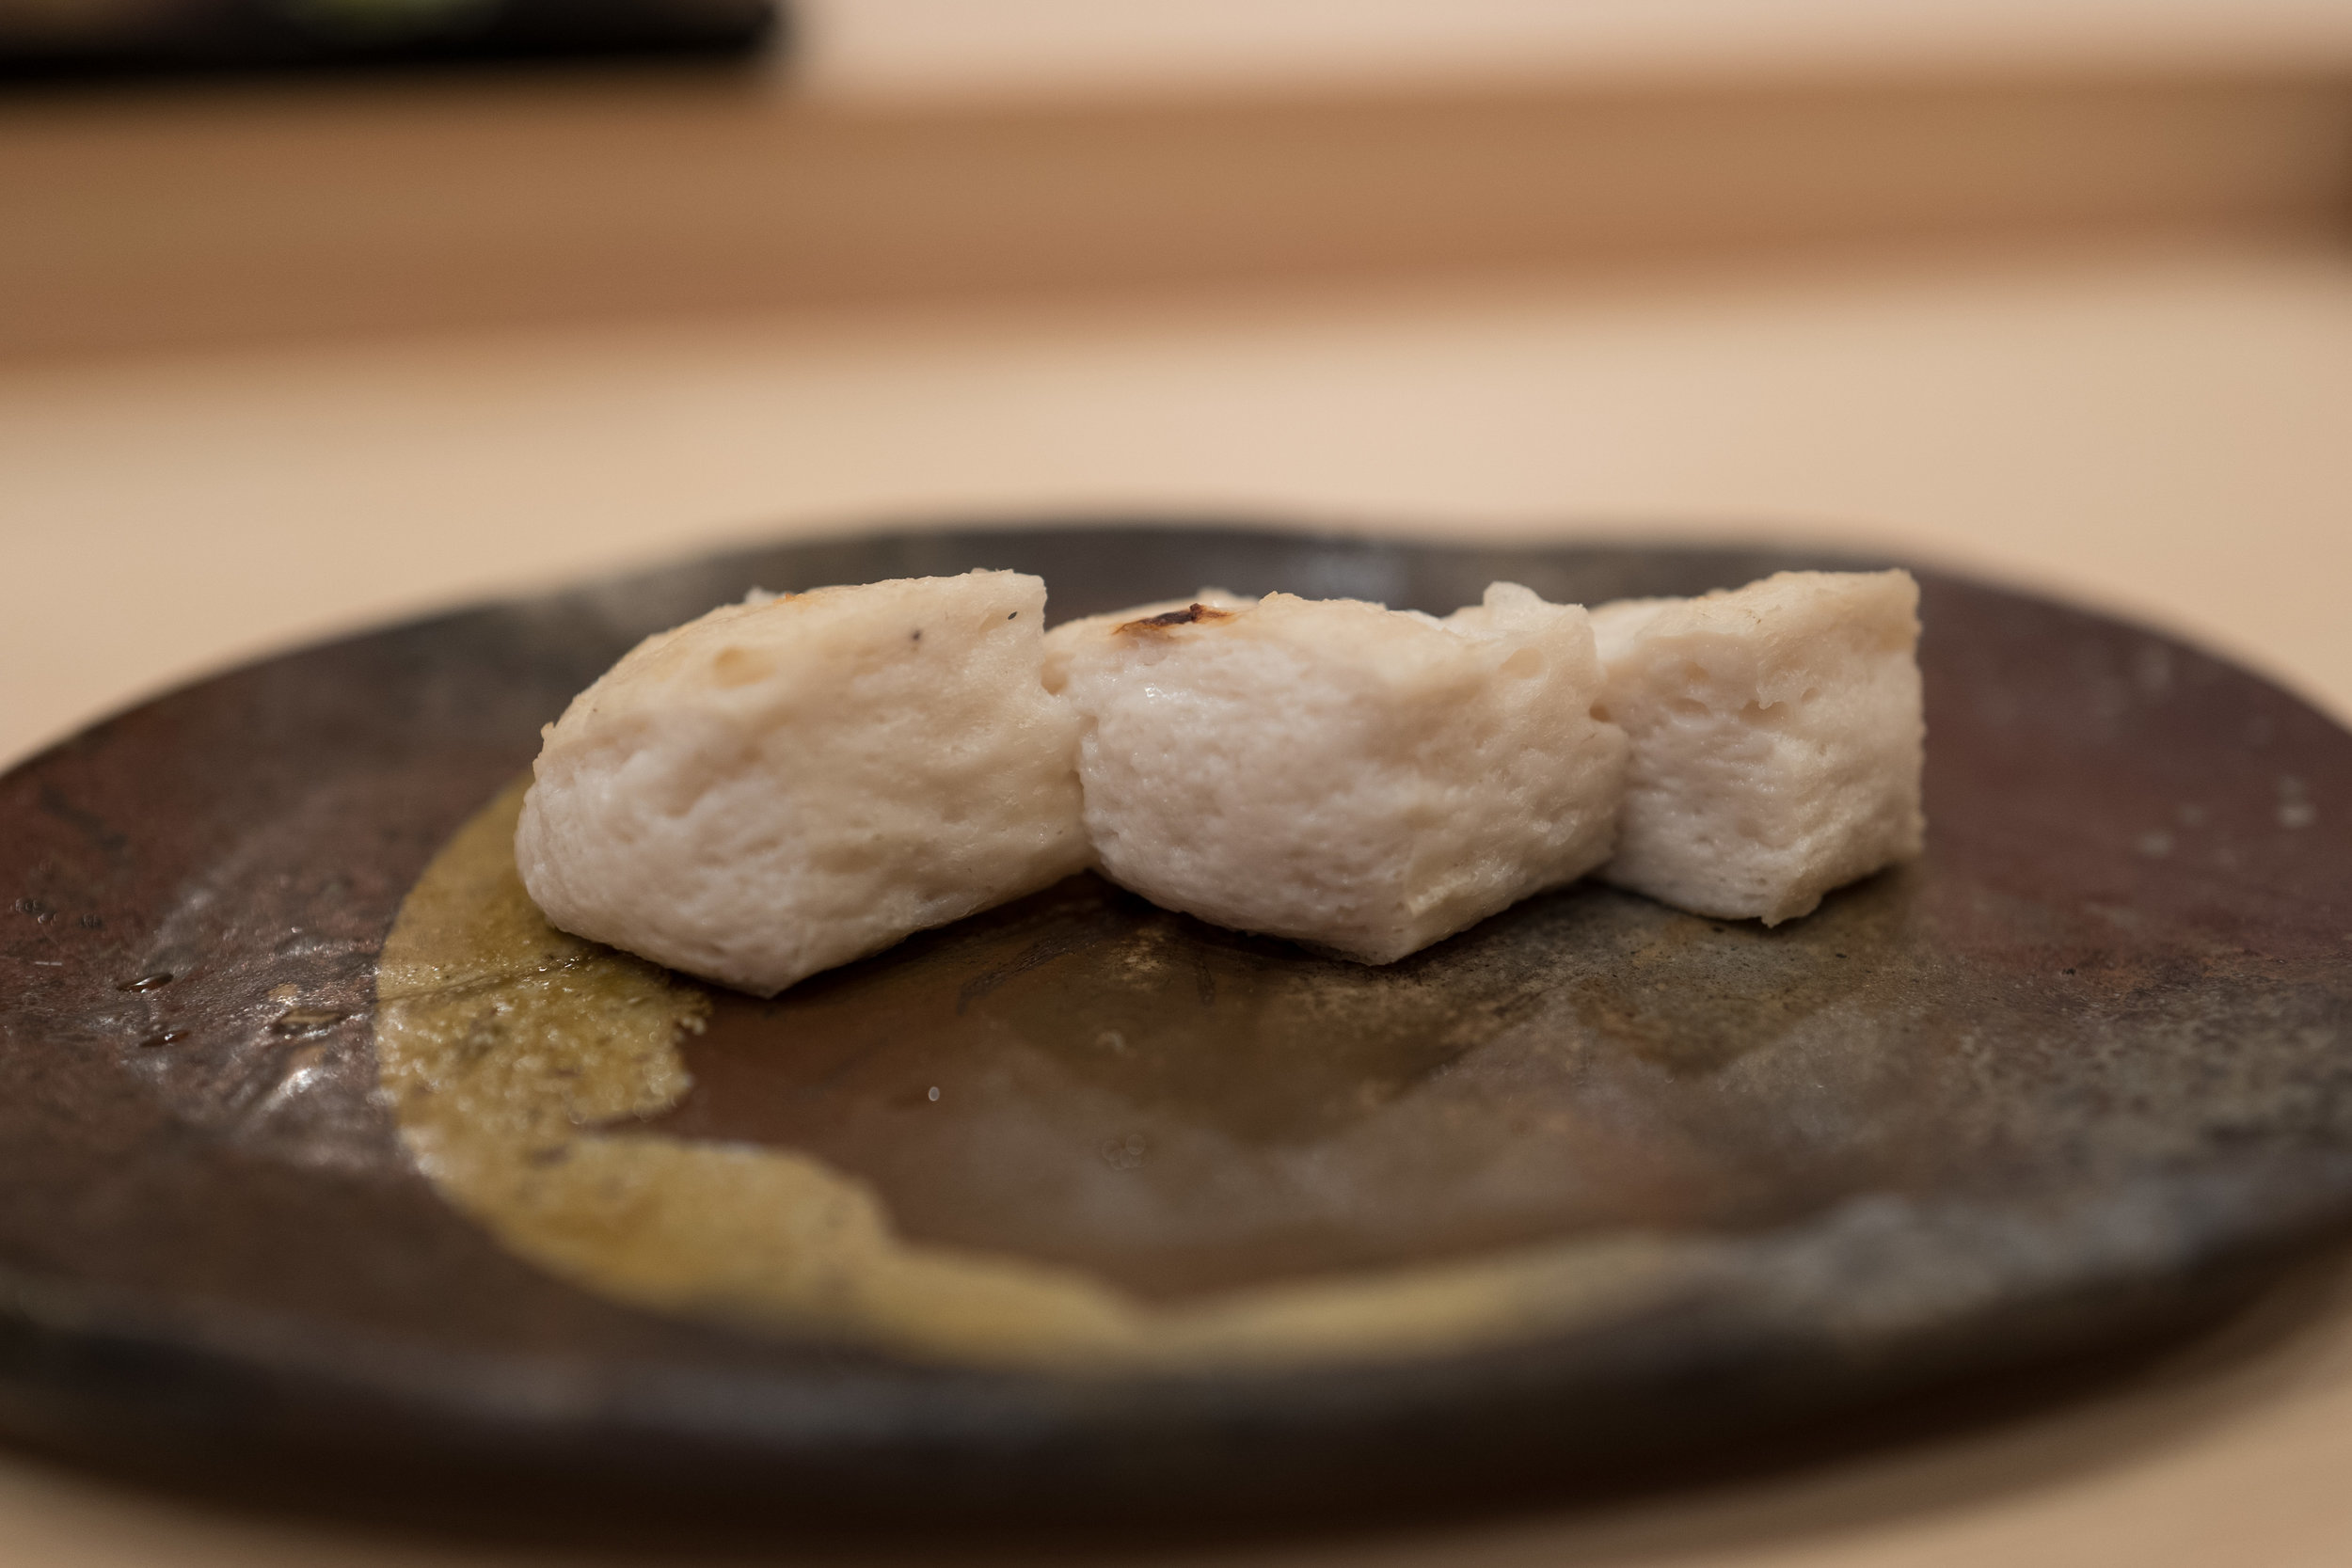 The soufflé-like shirako preparation was one of my favorite otsumami served.